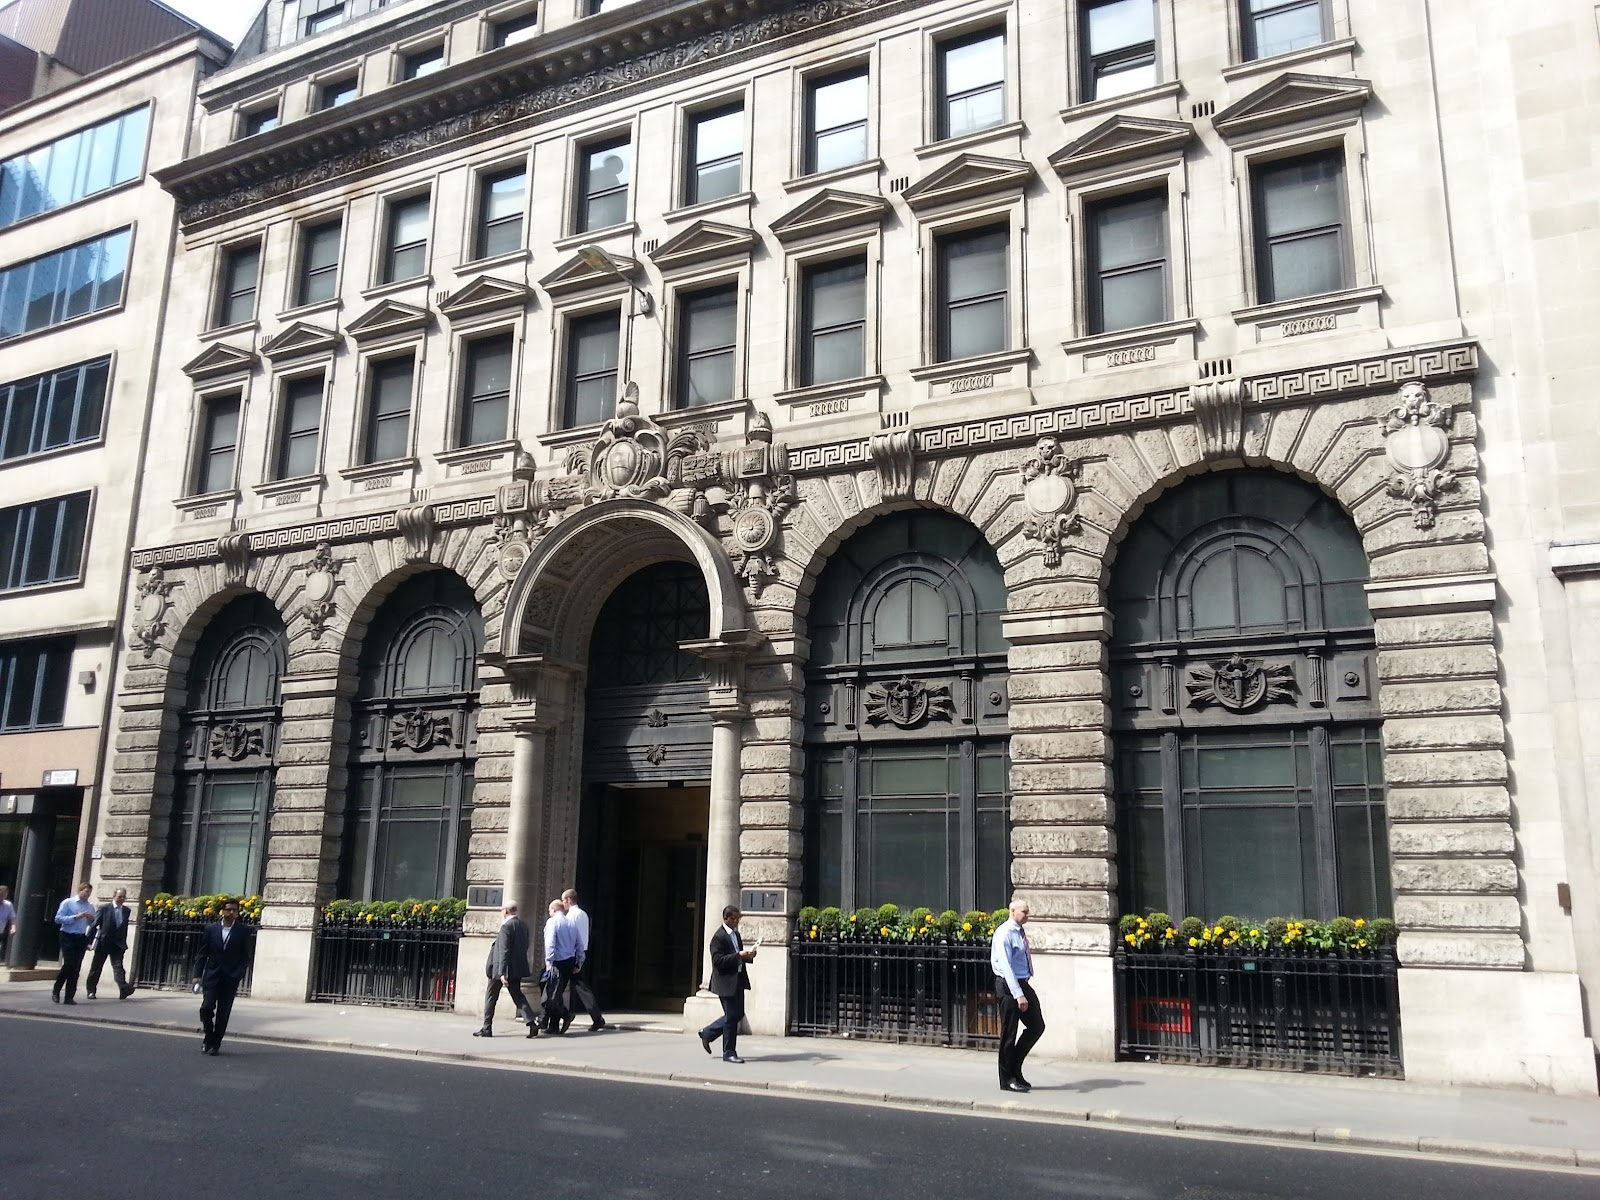 117 Fenchurch Street, London